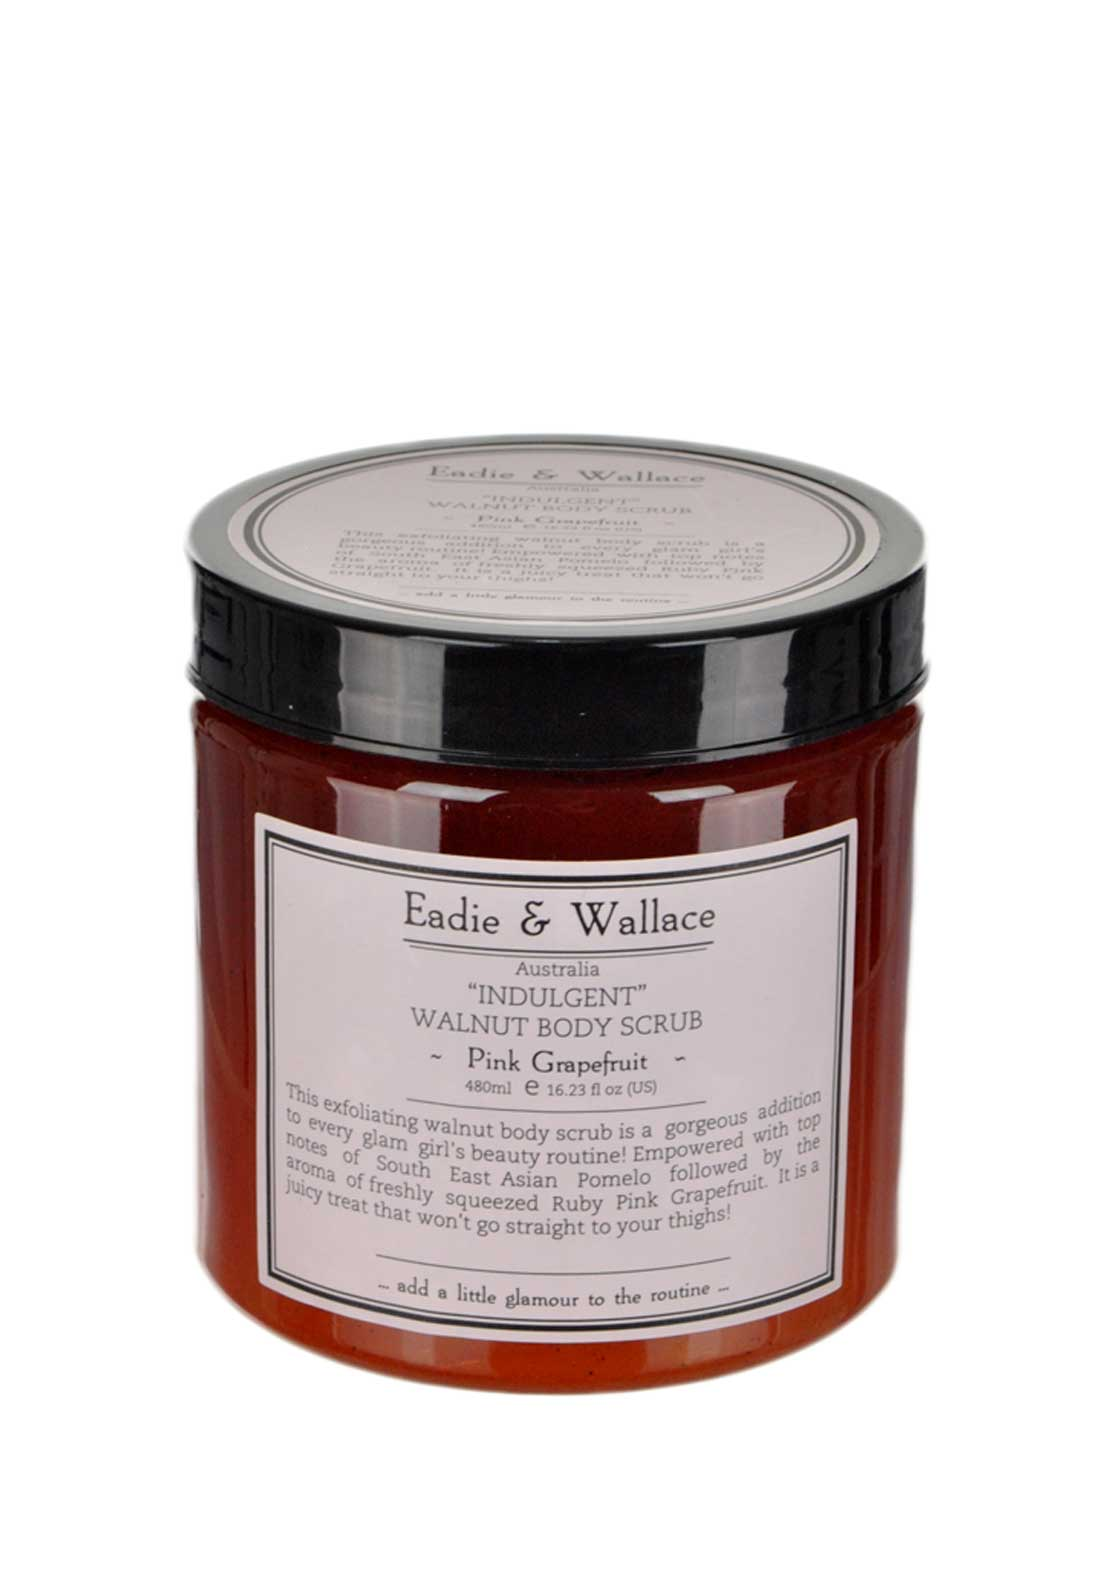 Eadie & Wallace Indulgent Walnut Body Scrub, Pink Grapefruit